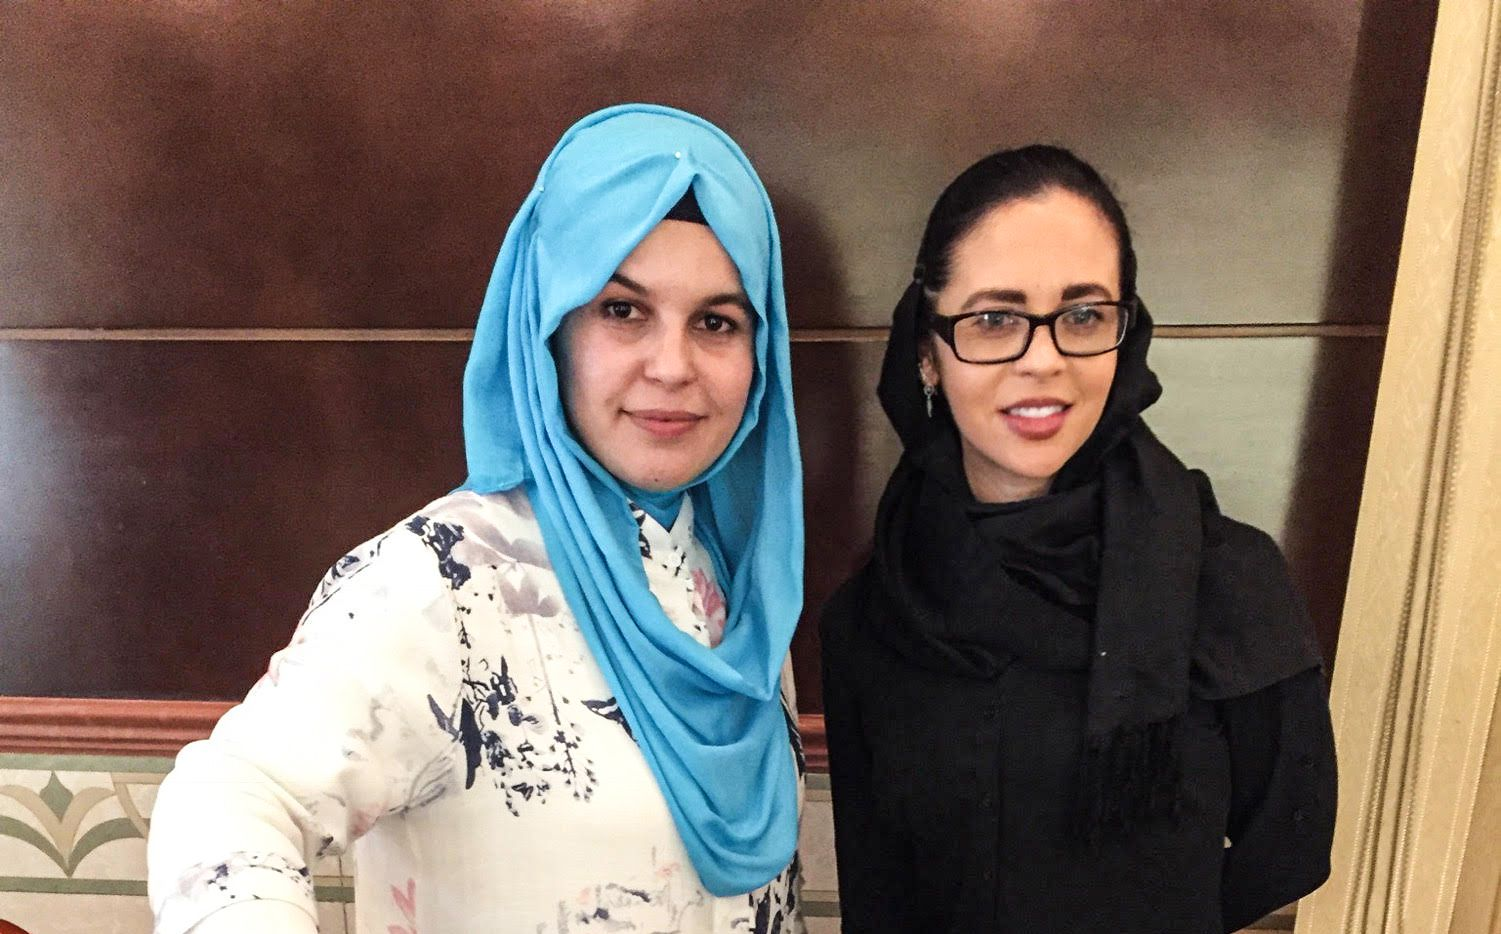 Fariha Easer with the author, Hollie McKay.